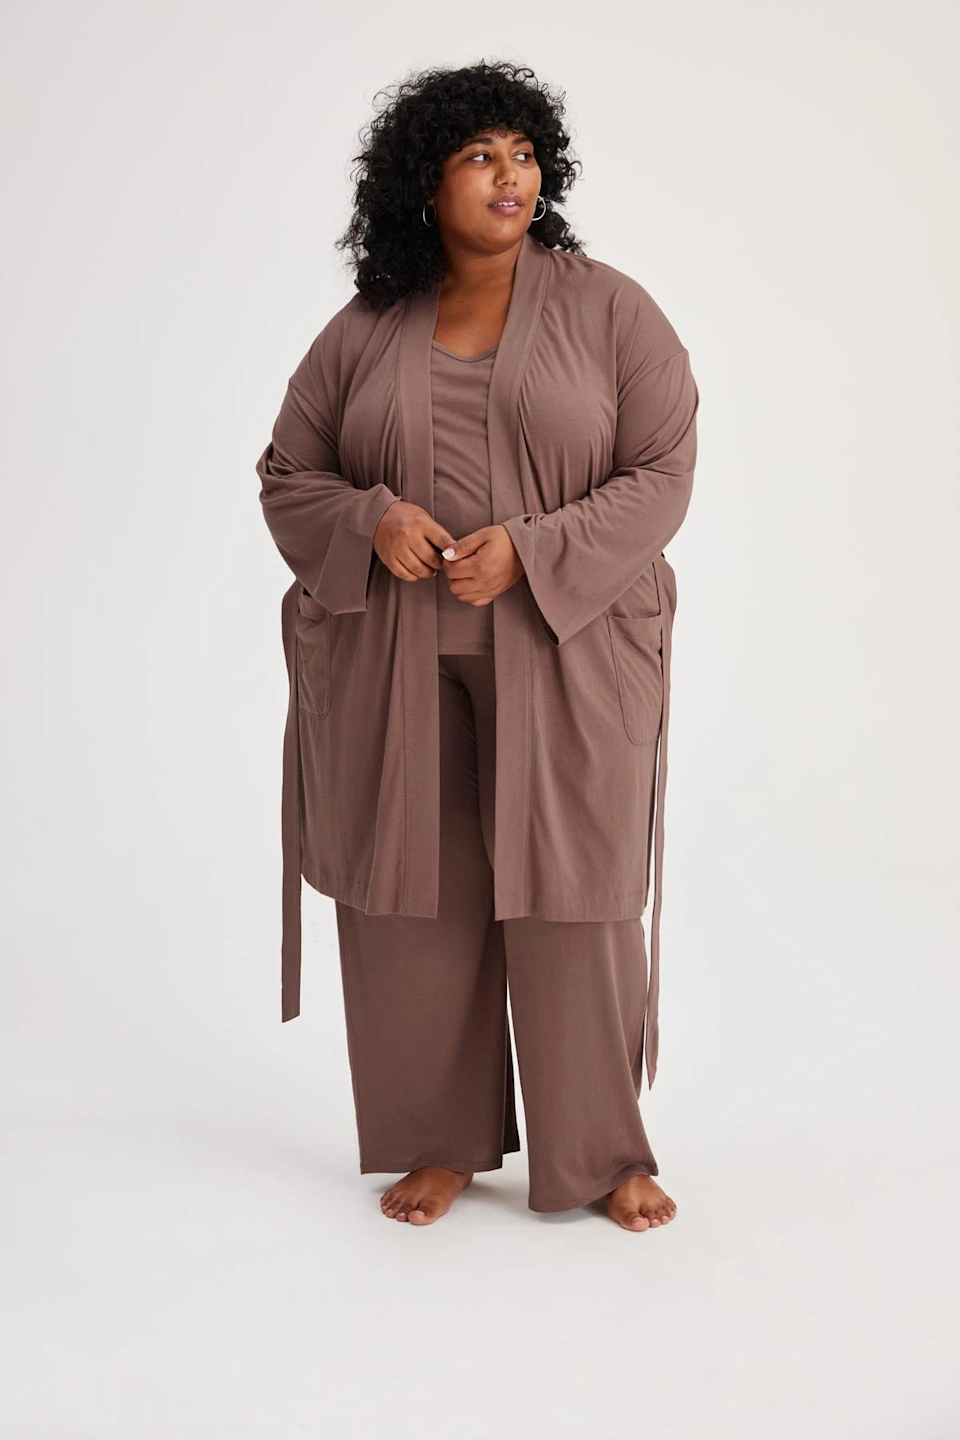 """<br><br><strong>Girlfriend Collective</strong> Canopy Dream Robe, $, available at <a href=""""https://go.skimresources.com/?id=30283X879131&url=https%3A%2F%2Fwww.girlfriend.com%2Fproducts%2Fcanopy-dream-robe"""" rel=""""nofollow noopener"""" target=""""_blank"""" data-ylk=""""slk:Girlfriend Collective"""" class=""""link rapid-noclick-resp"""">Girlfriend Collective</a>"""